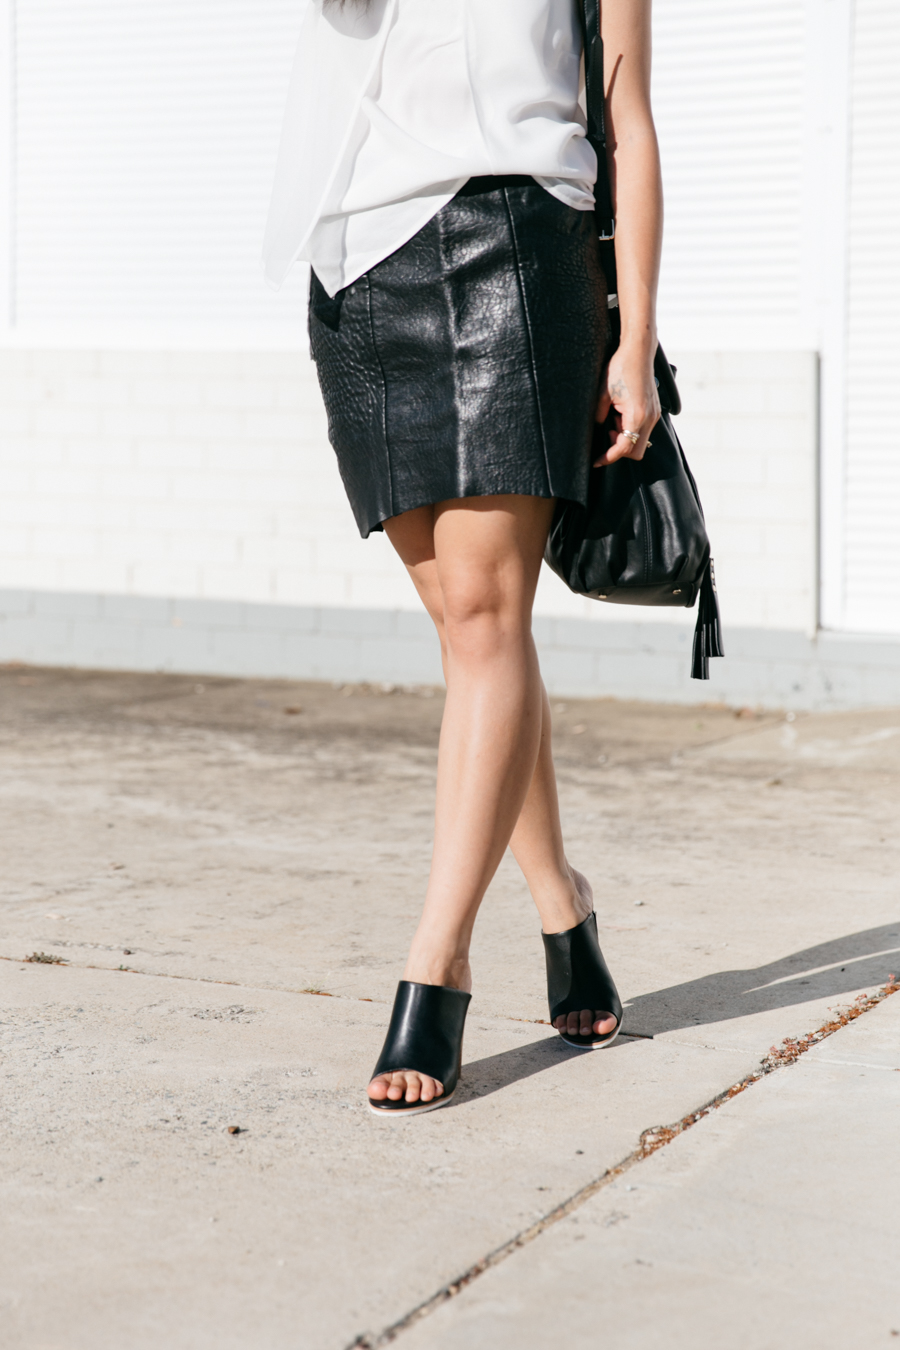 Perth street style. Perth fashion blog. Minimalist style outfit. Leather skirt & leather mules.